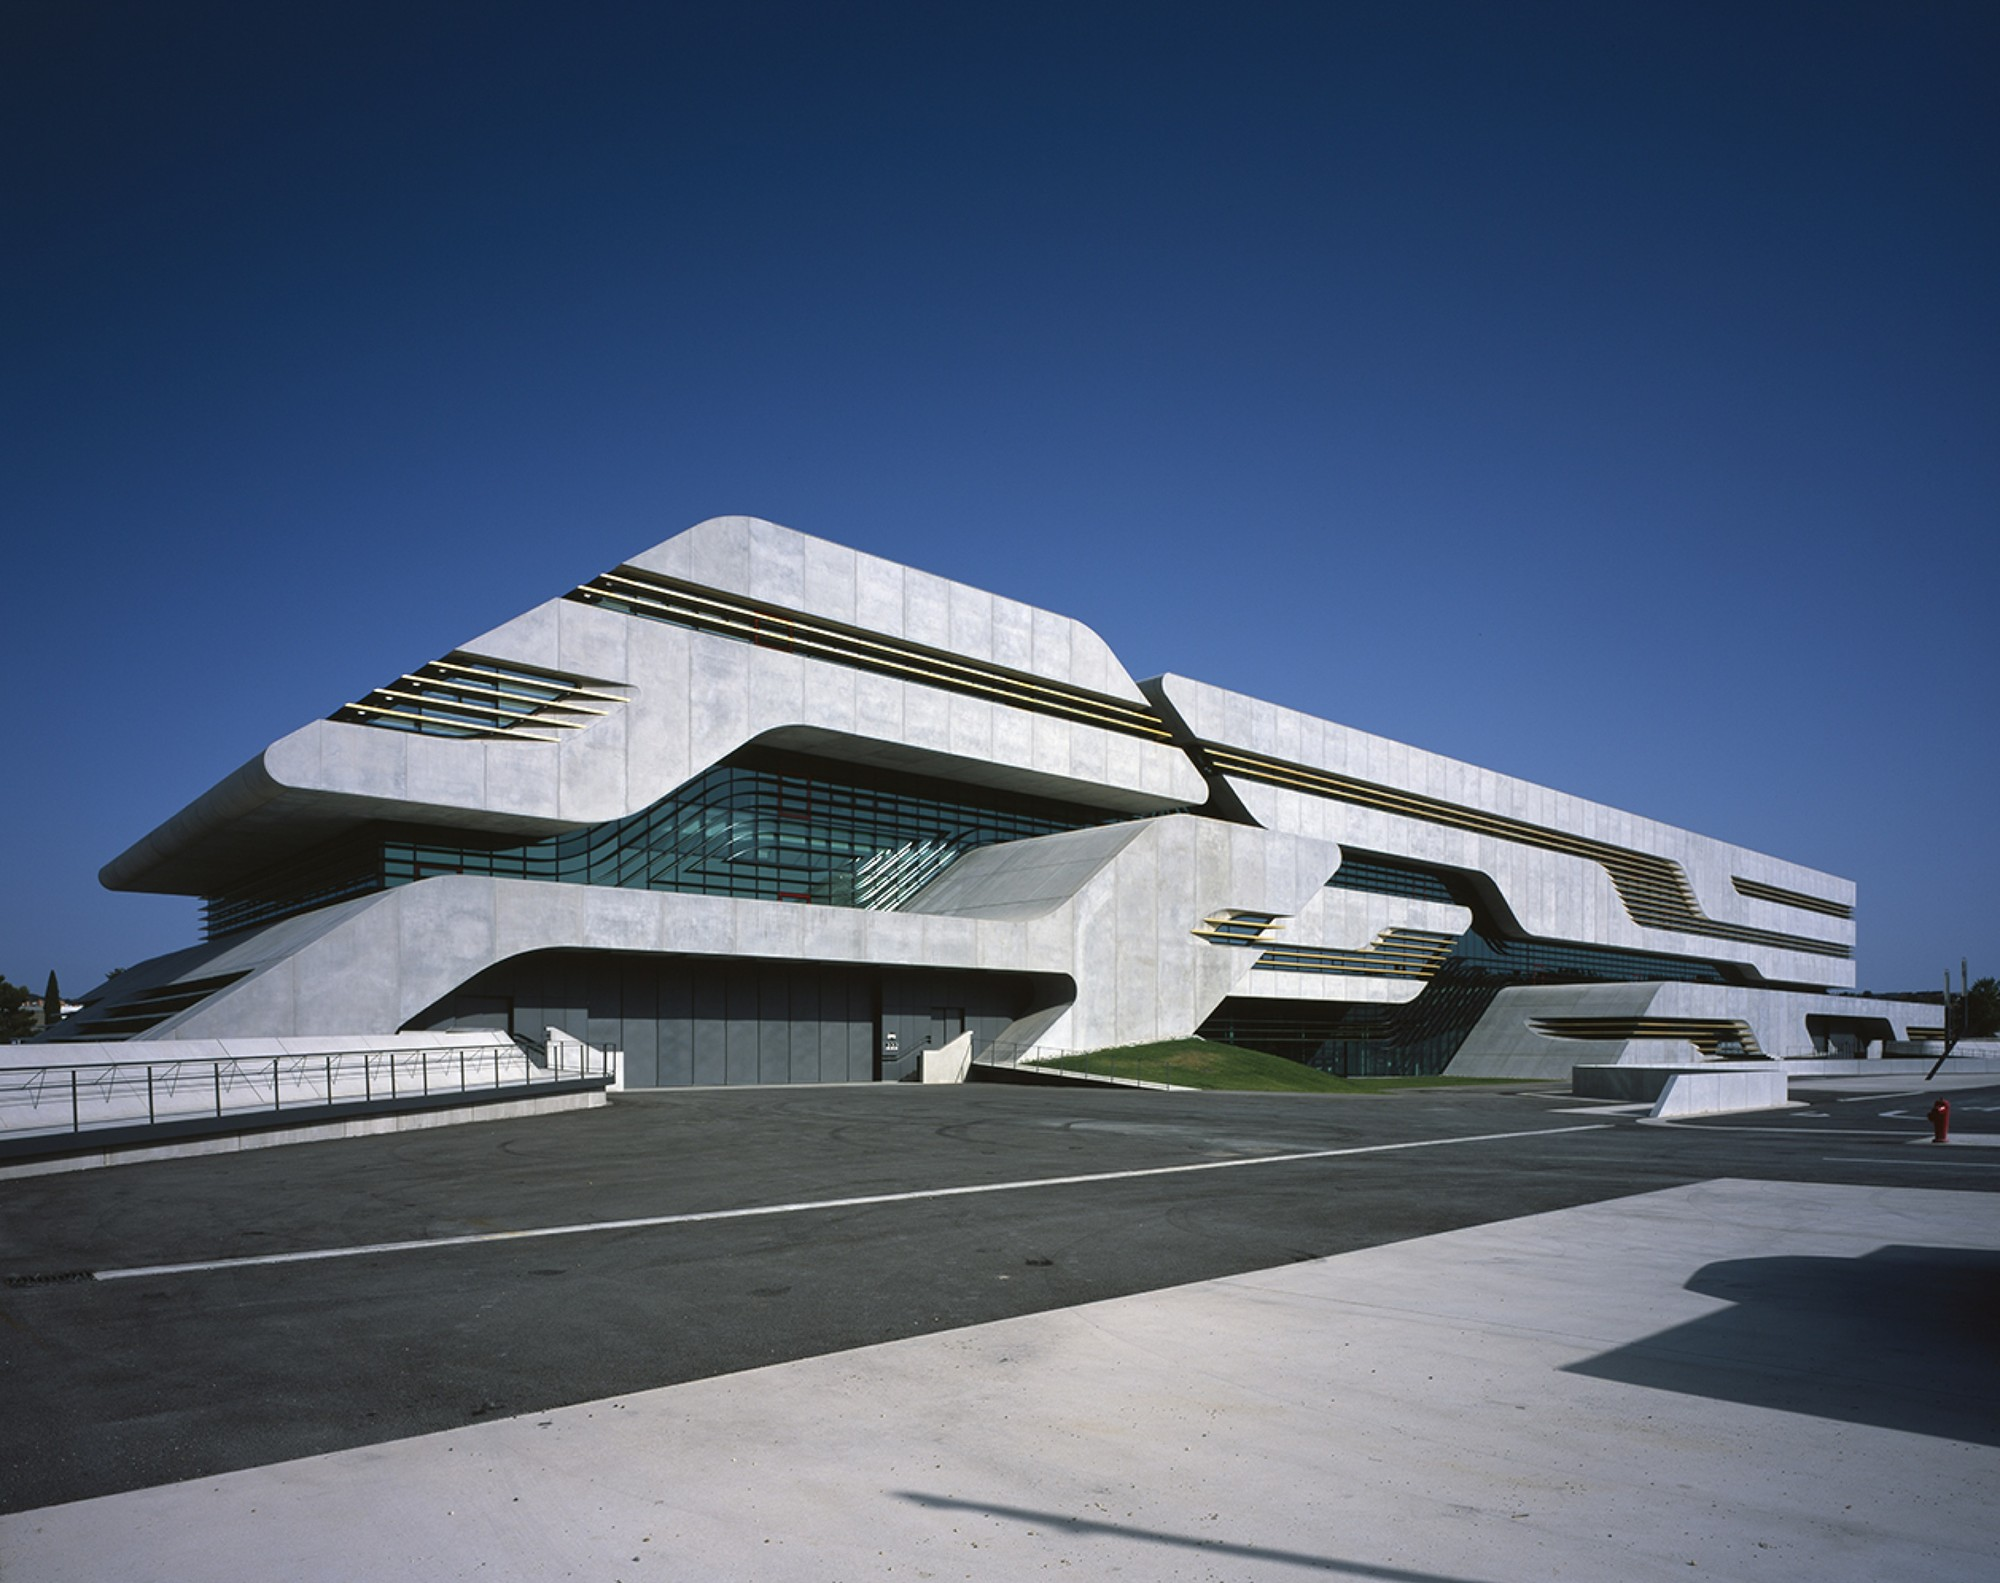 Pierres vives zaha hadid architects archdaily for Architecture zaha hadid